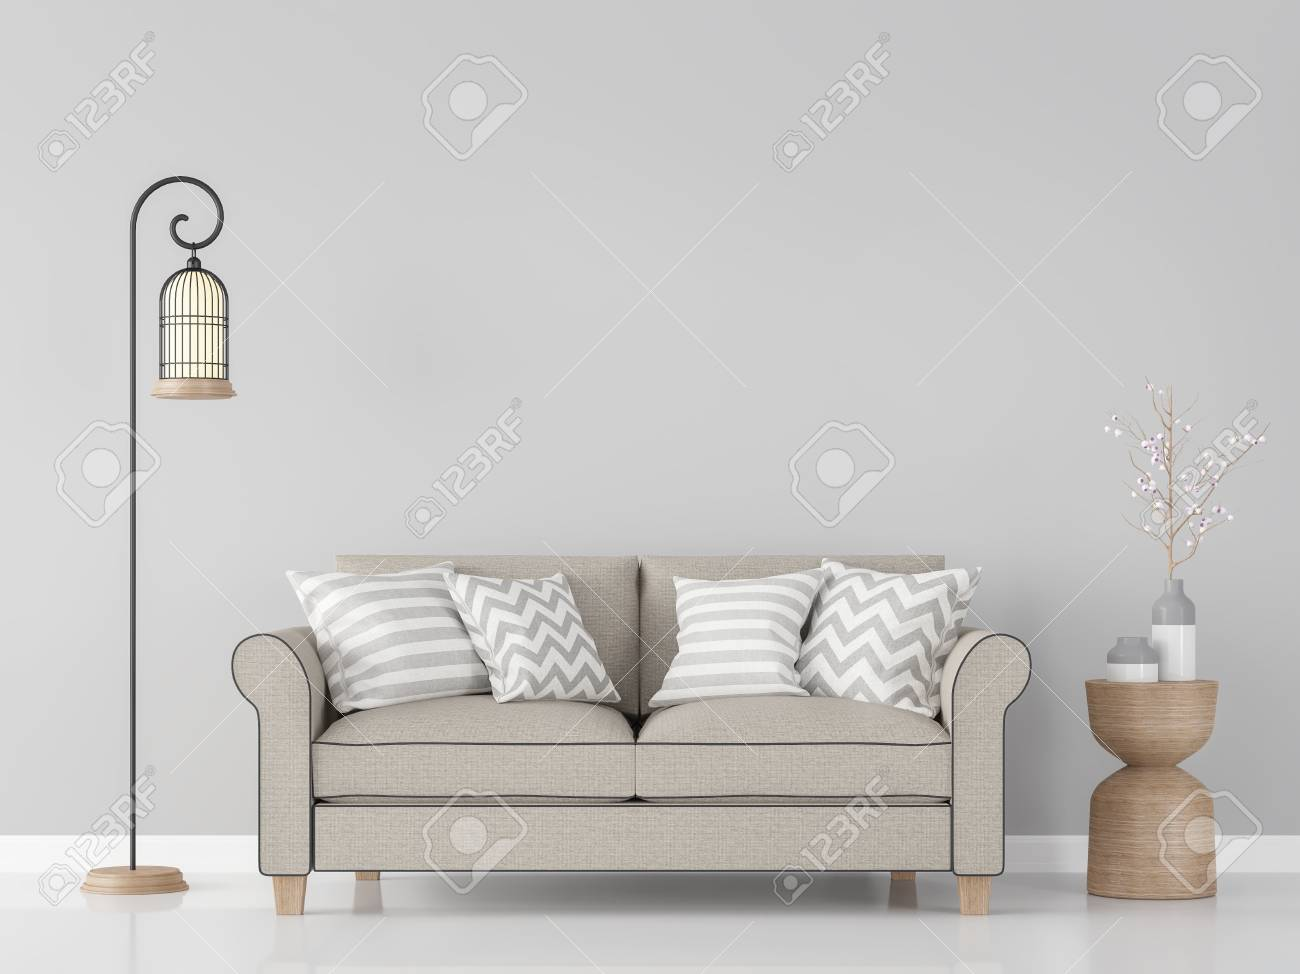 Modern Vintage Living Room Interior 3d Rendering ImageThere Are Minimalist Style Image Gray